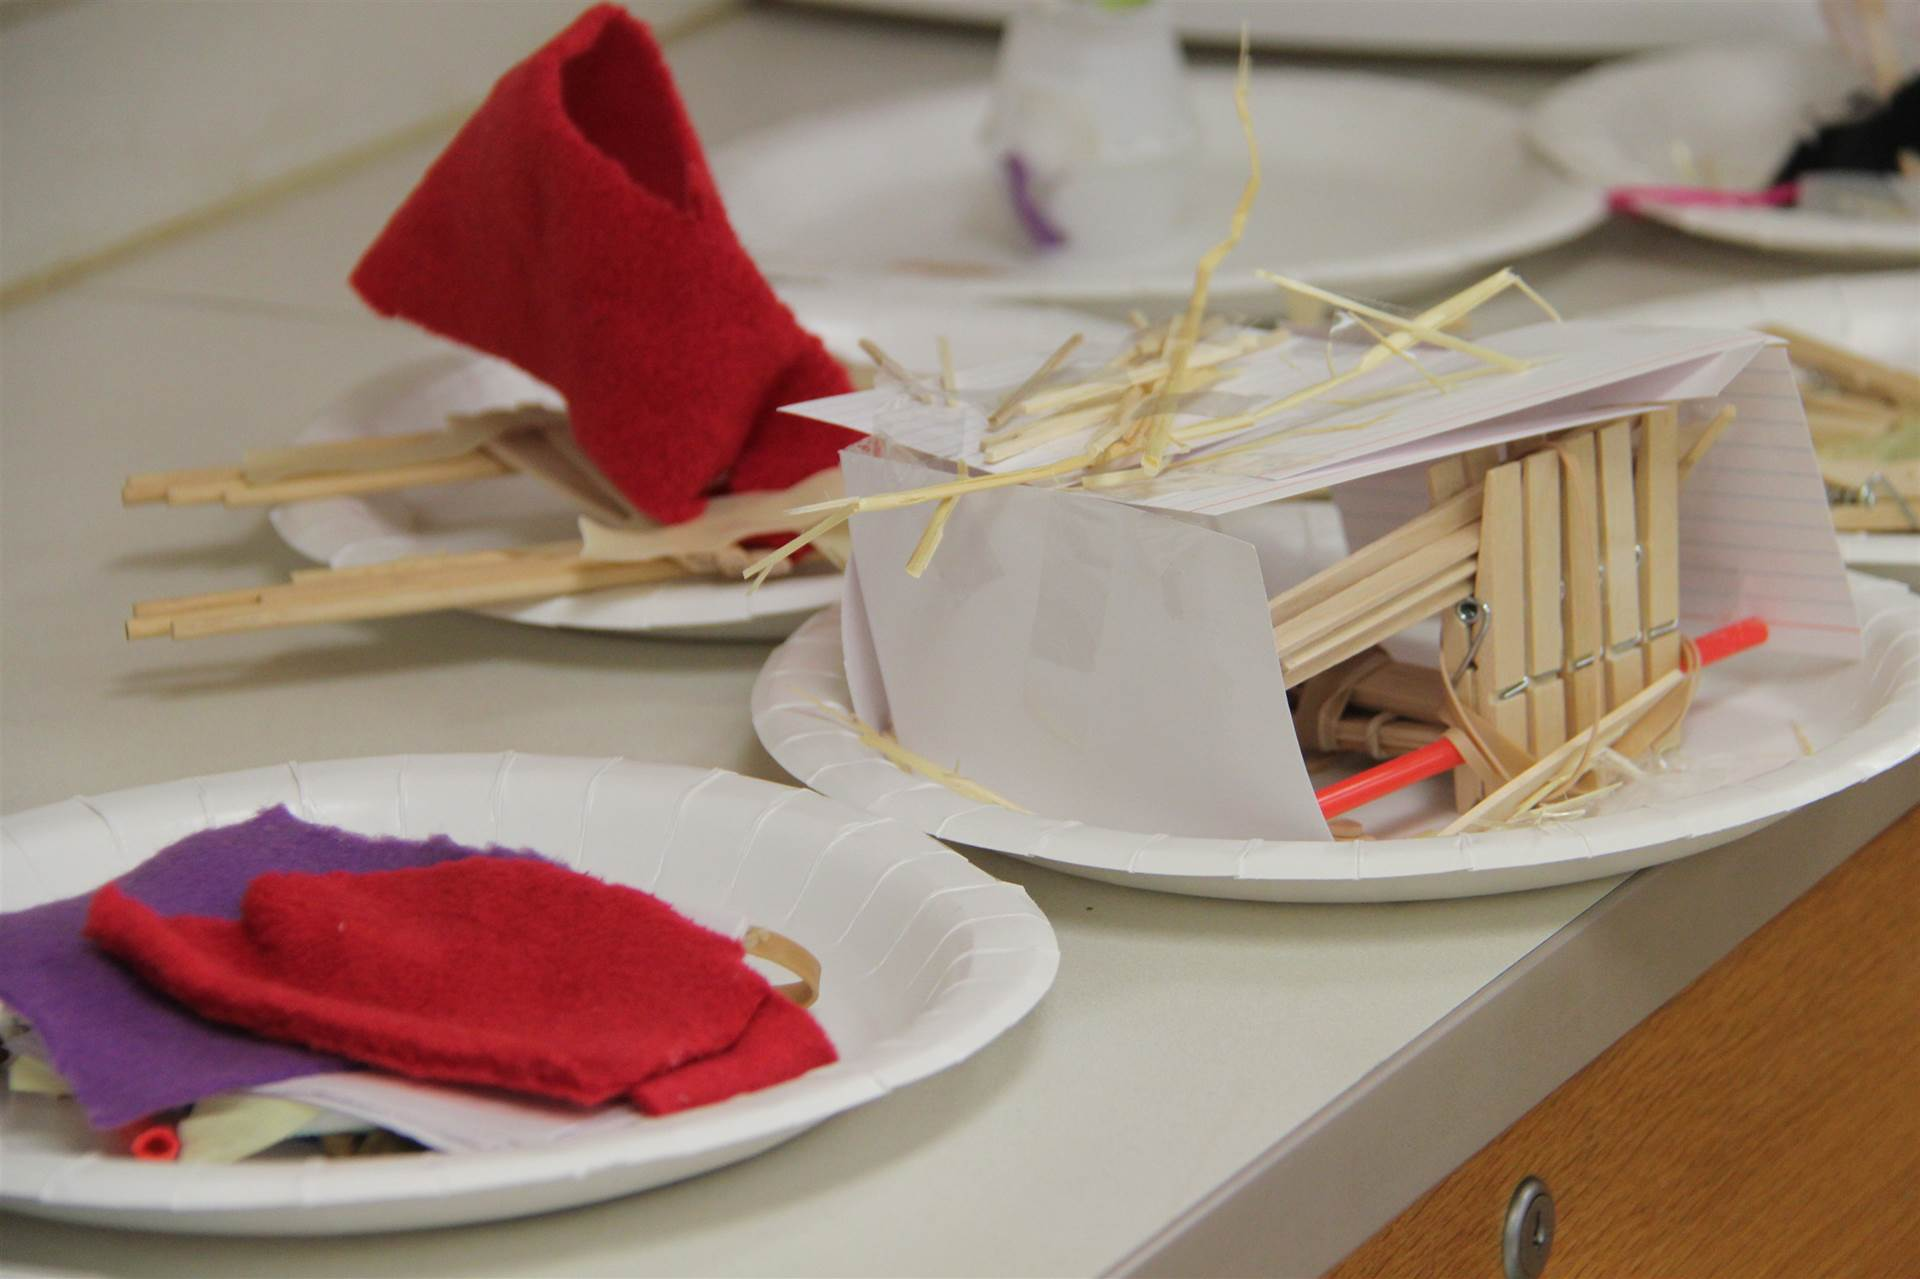 more examples of three little pigs challenge houses made of various objects